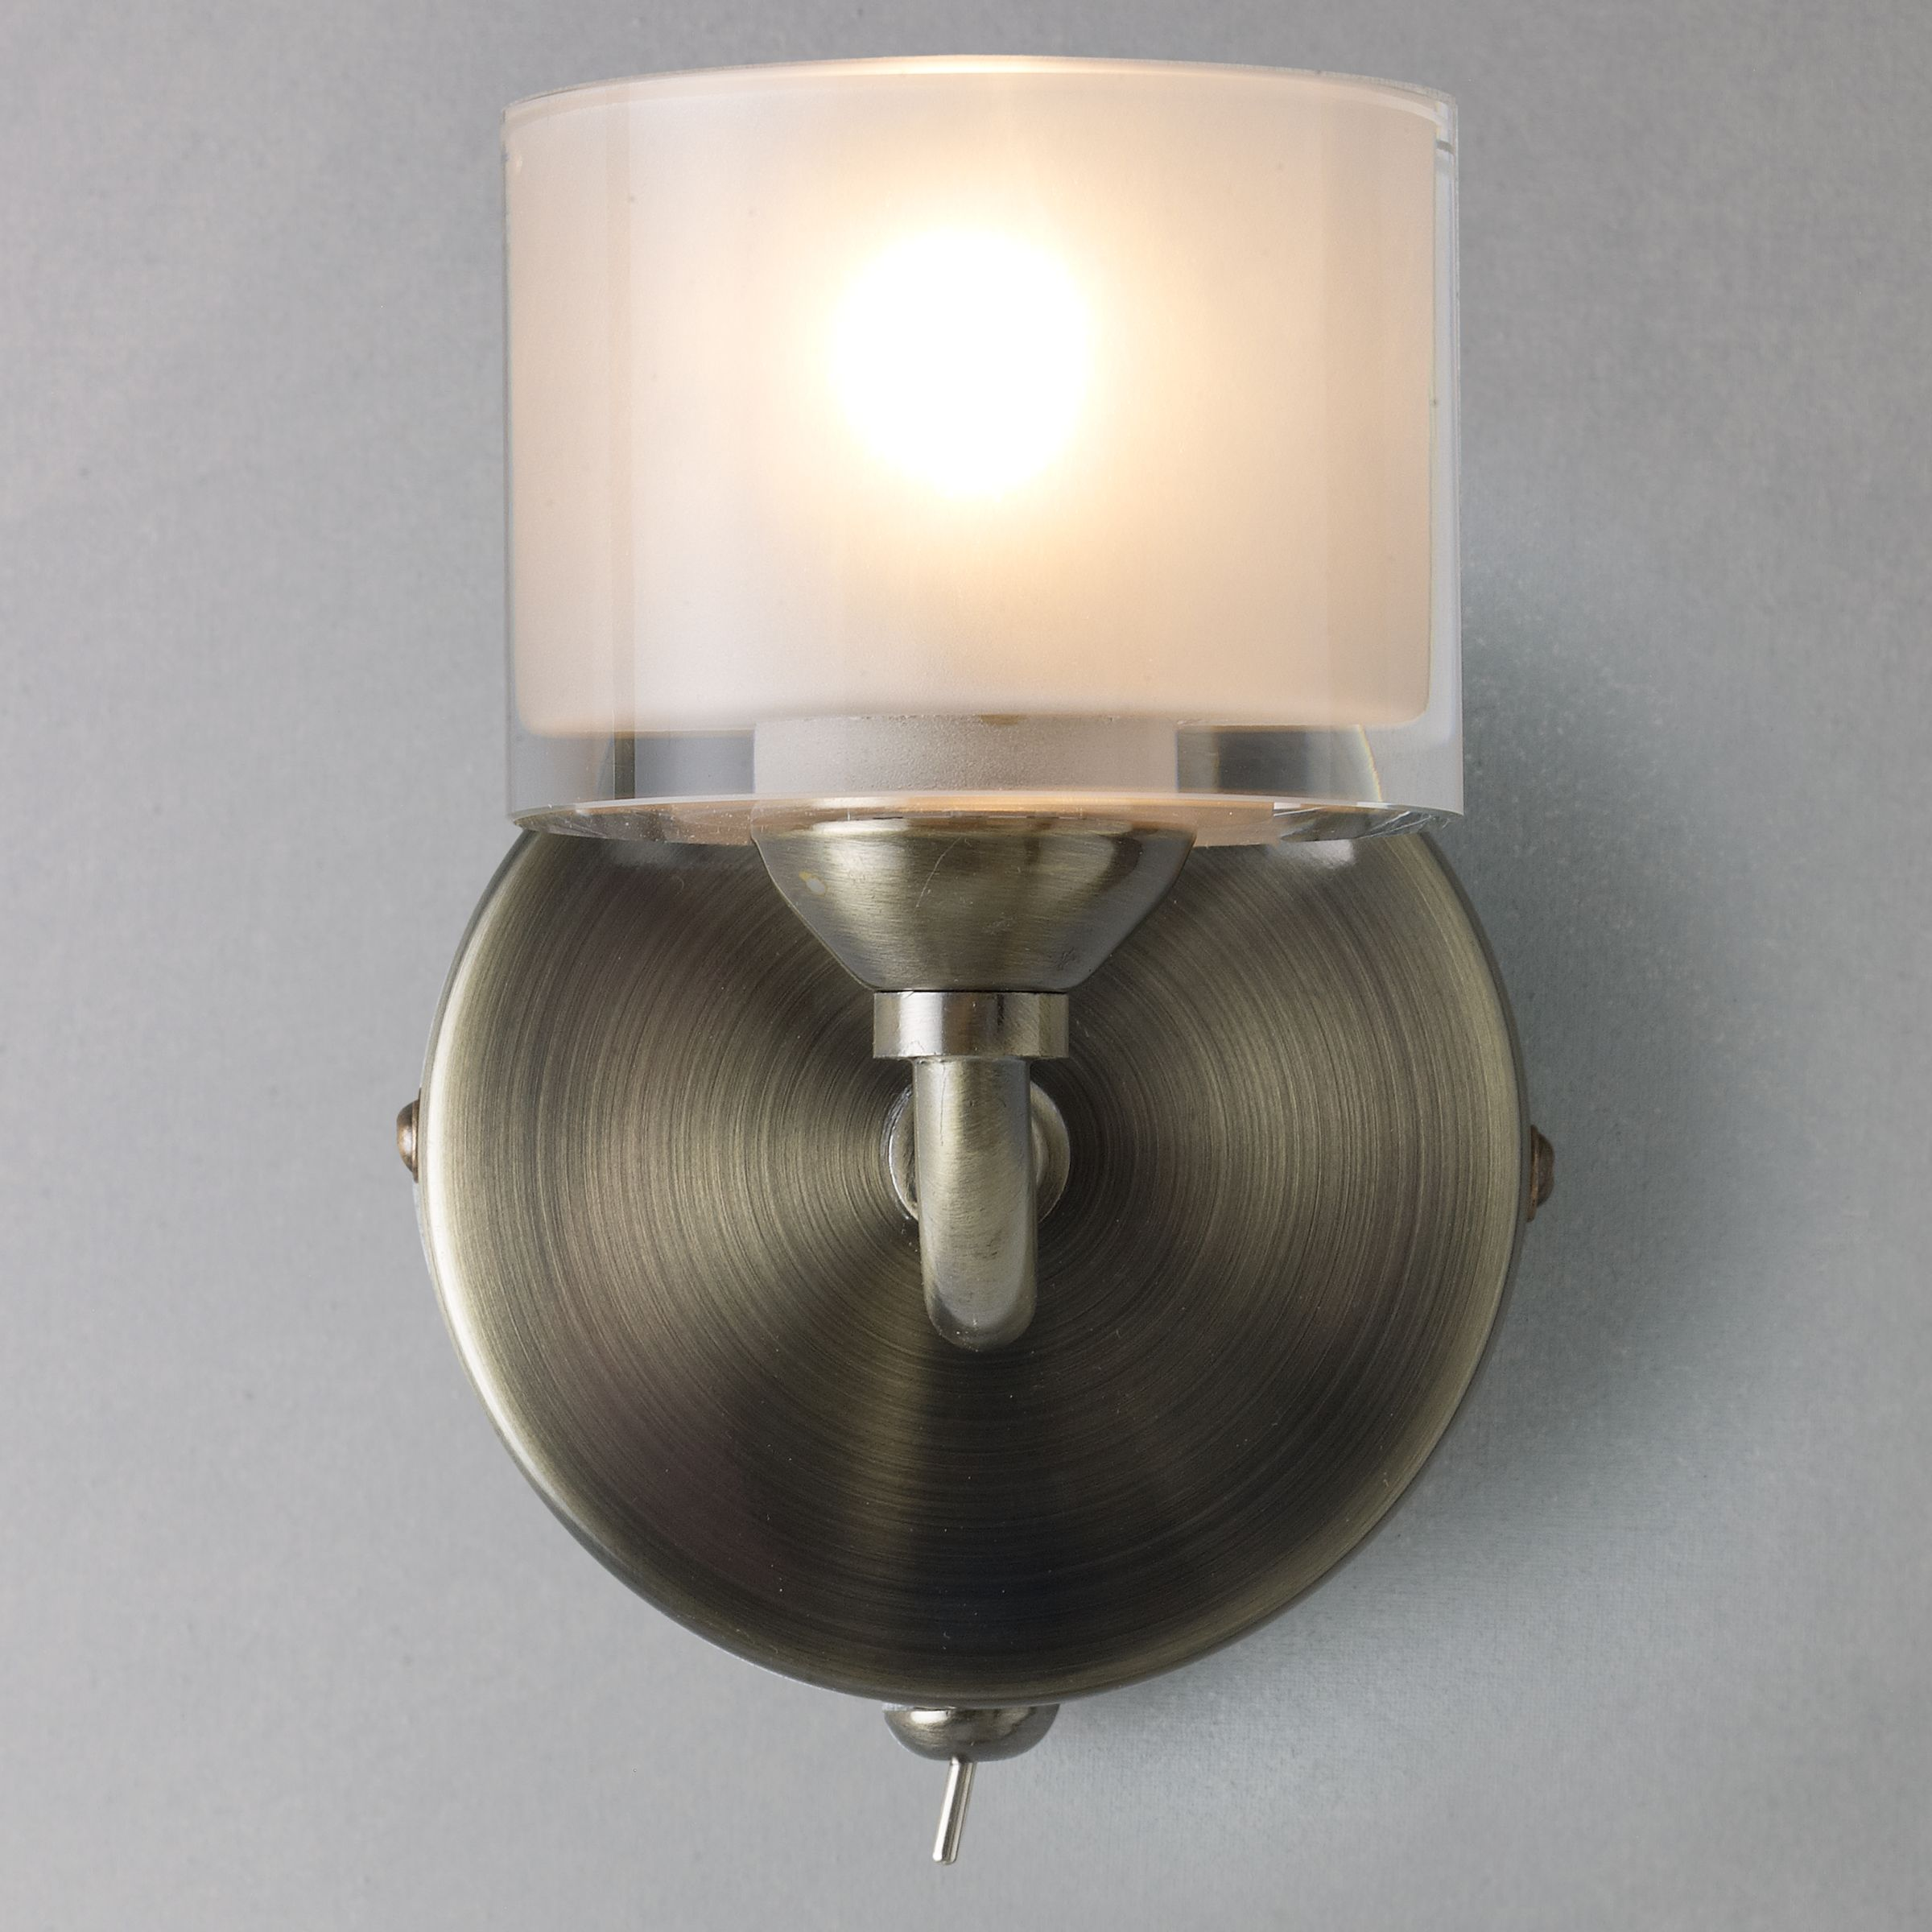 John Lewis Wall Lights Glass : Buy John Lewis Paige Single Wall Light John Lewis